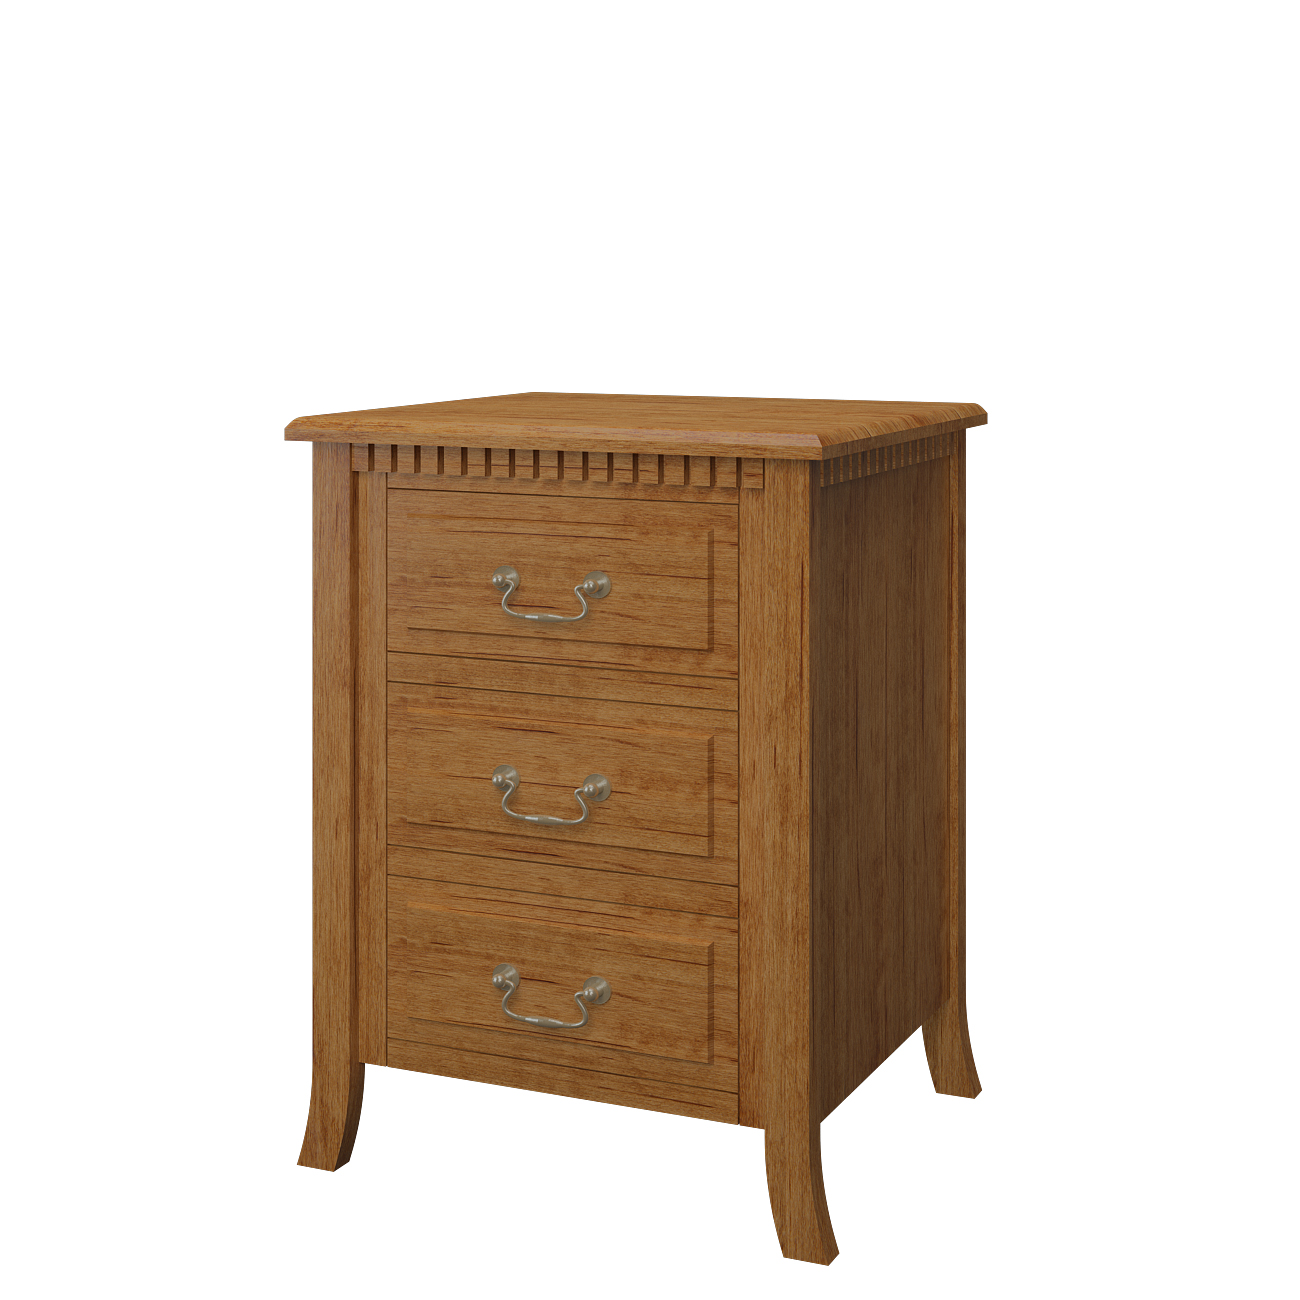 Dining Sets Tuscany Solid Wood Large Dining Set Table 6 Chairs: Lisbon Nightstand With Doors